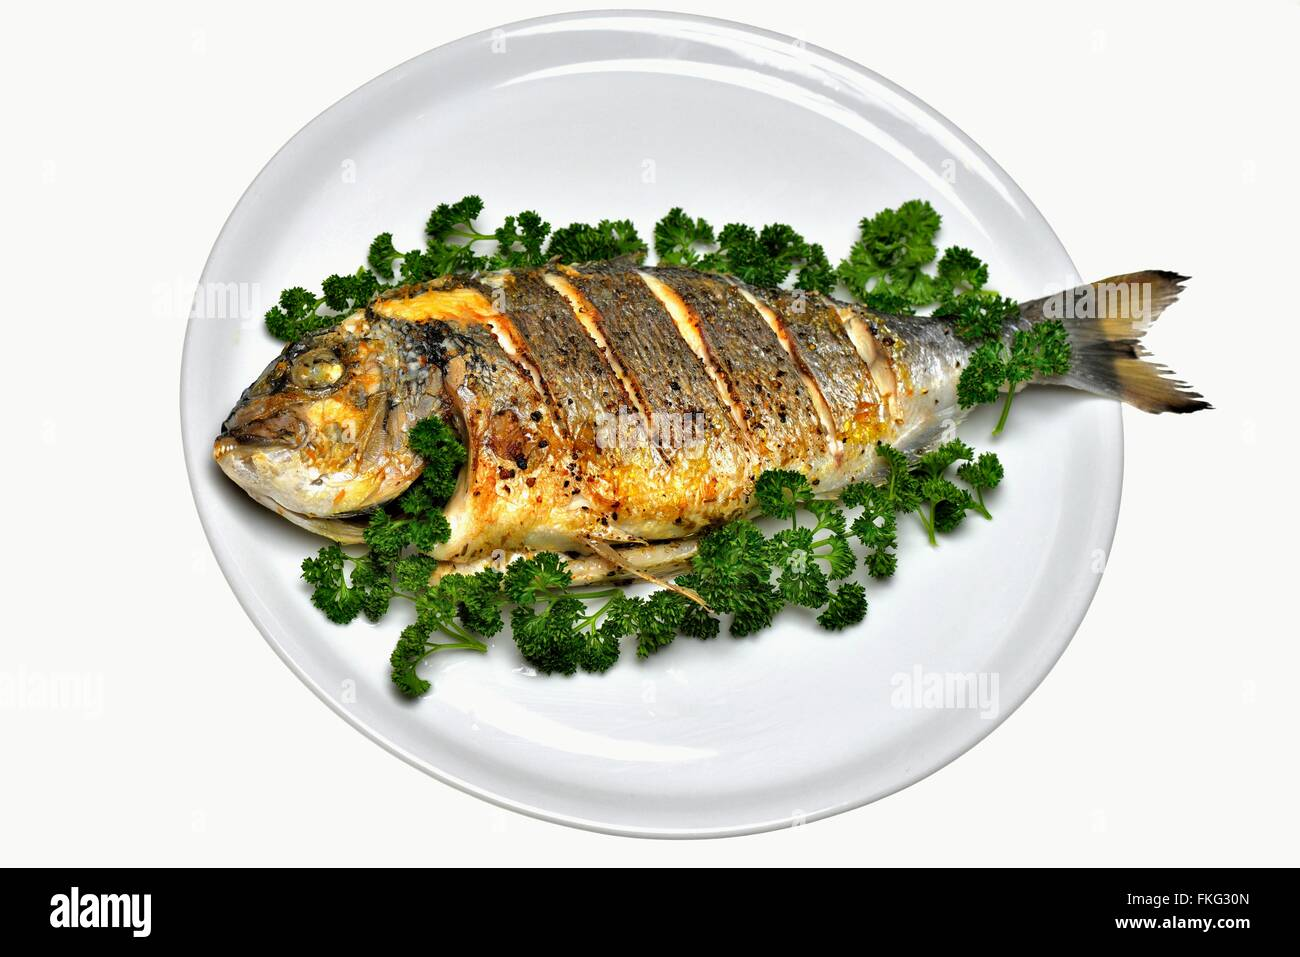 grilled sea bream with parsley exempted - Stock Image